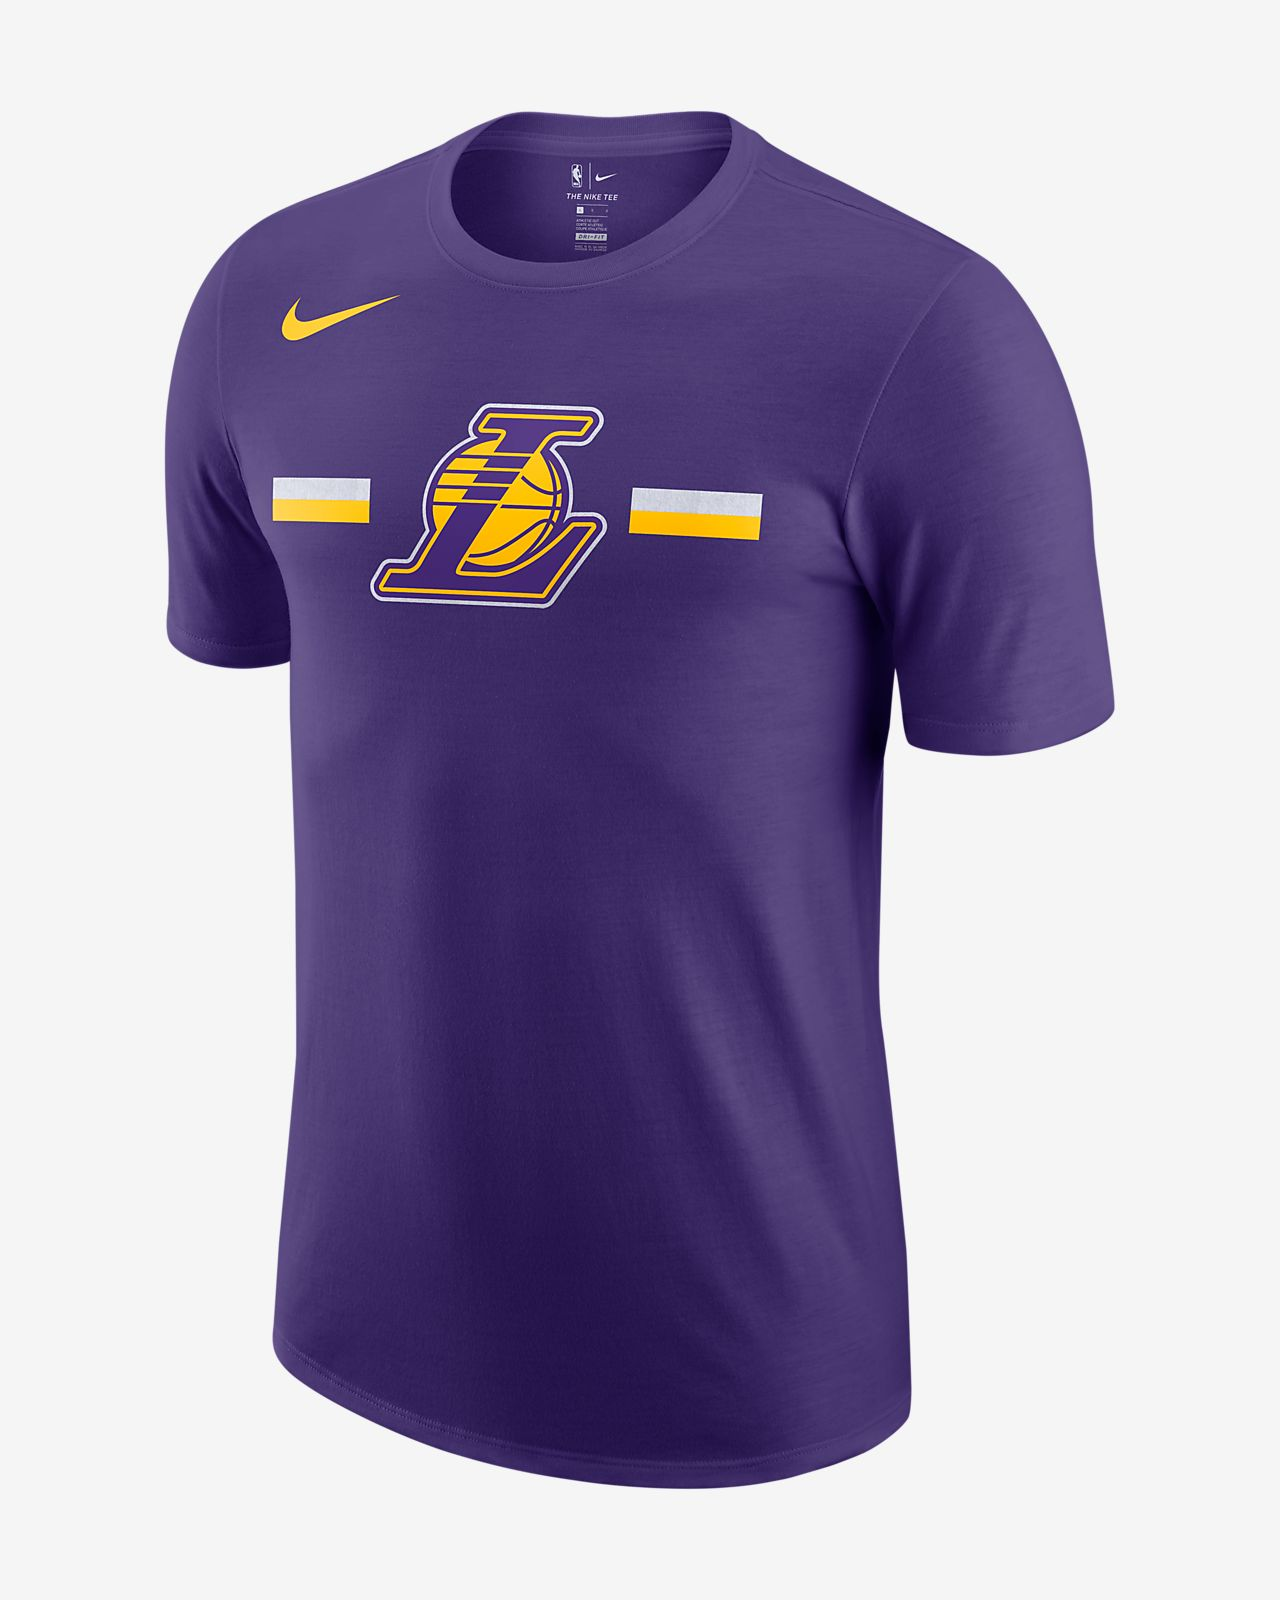 Los Angeles Lakers Nike Dri-FIT 男款 NBA T 恤